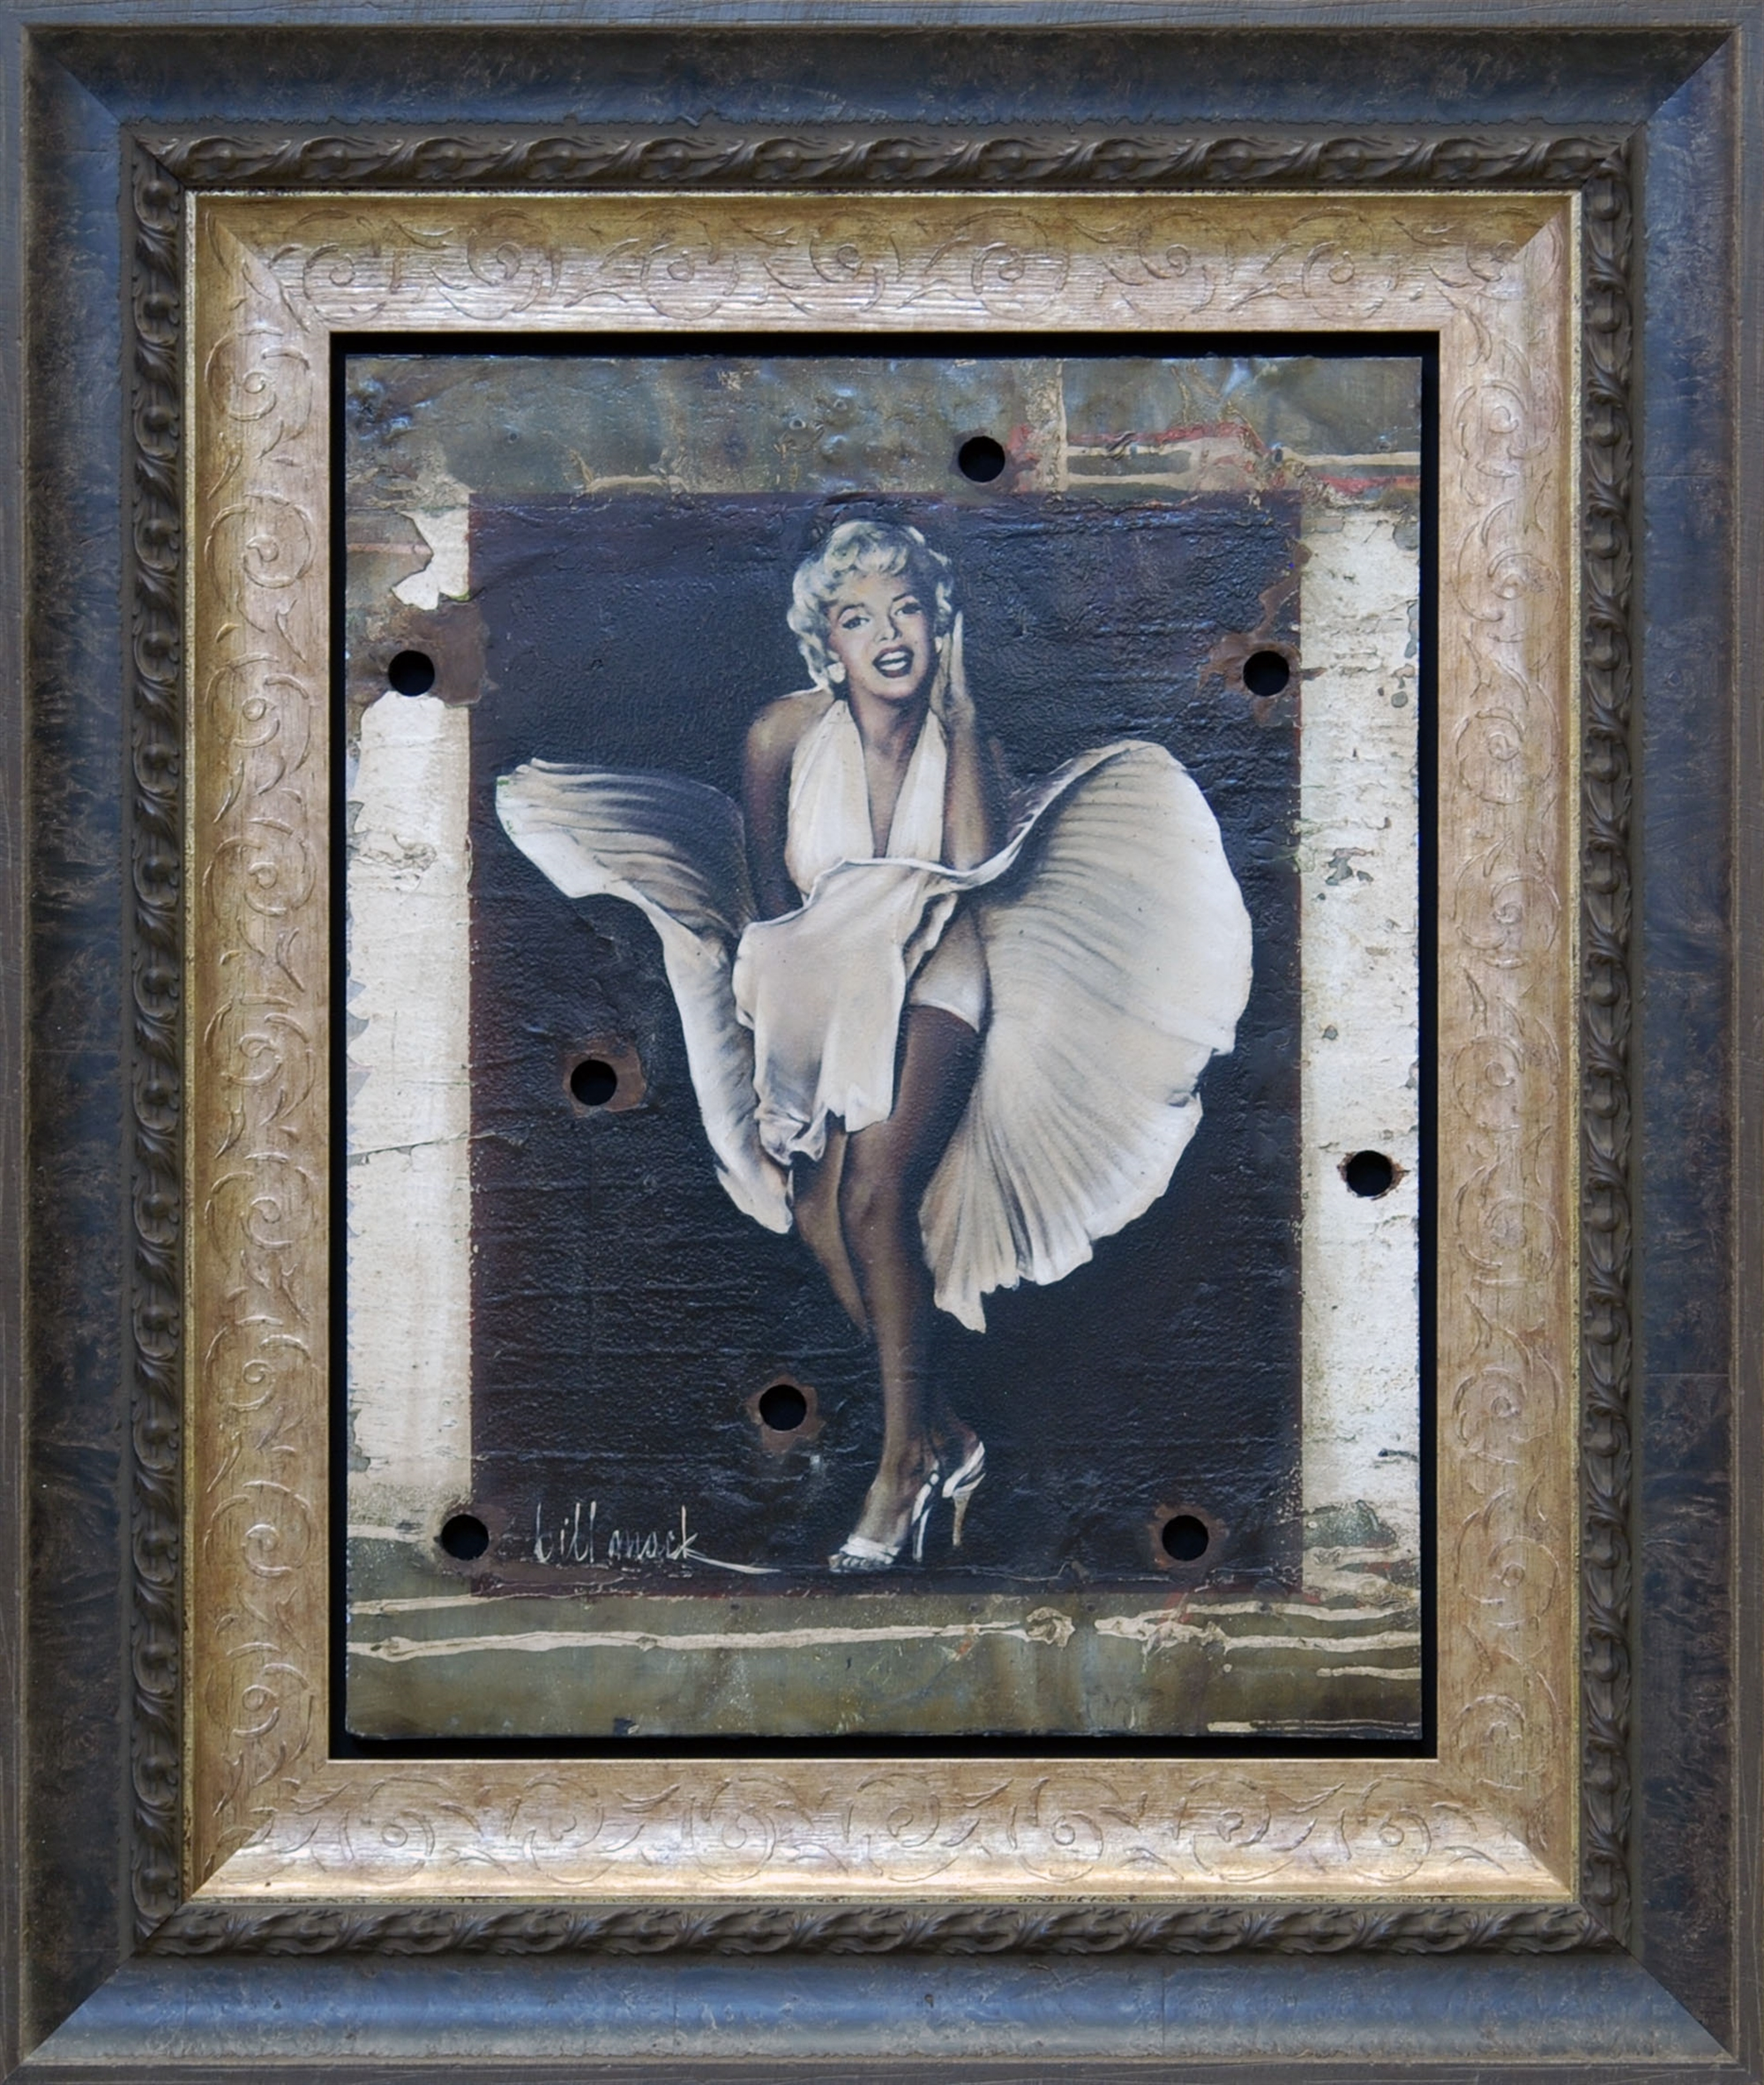 Marilyn Seven Year Itch Unique by Bill Mack